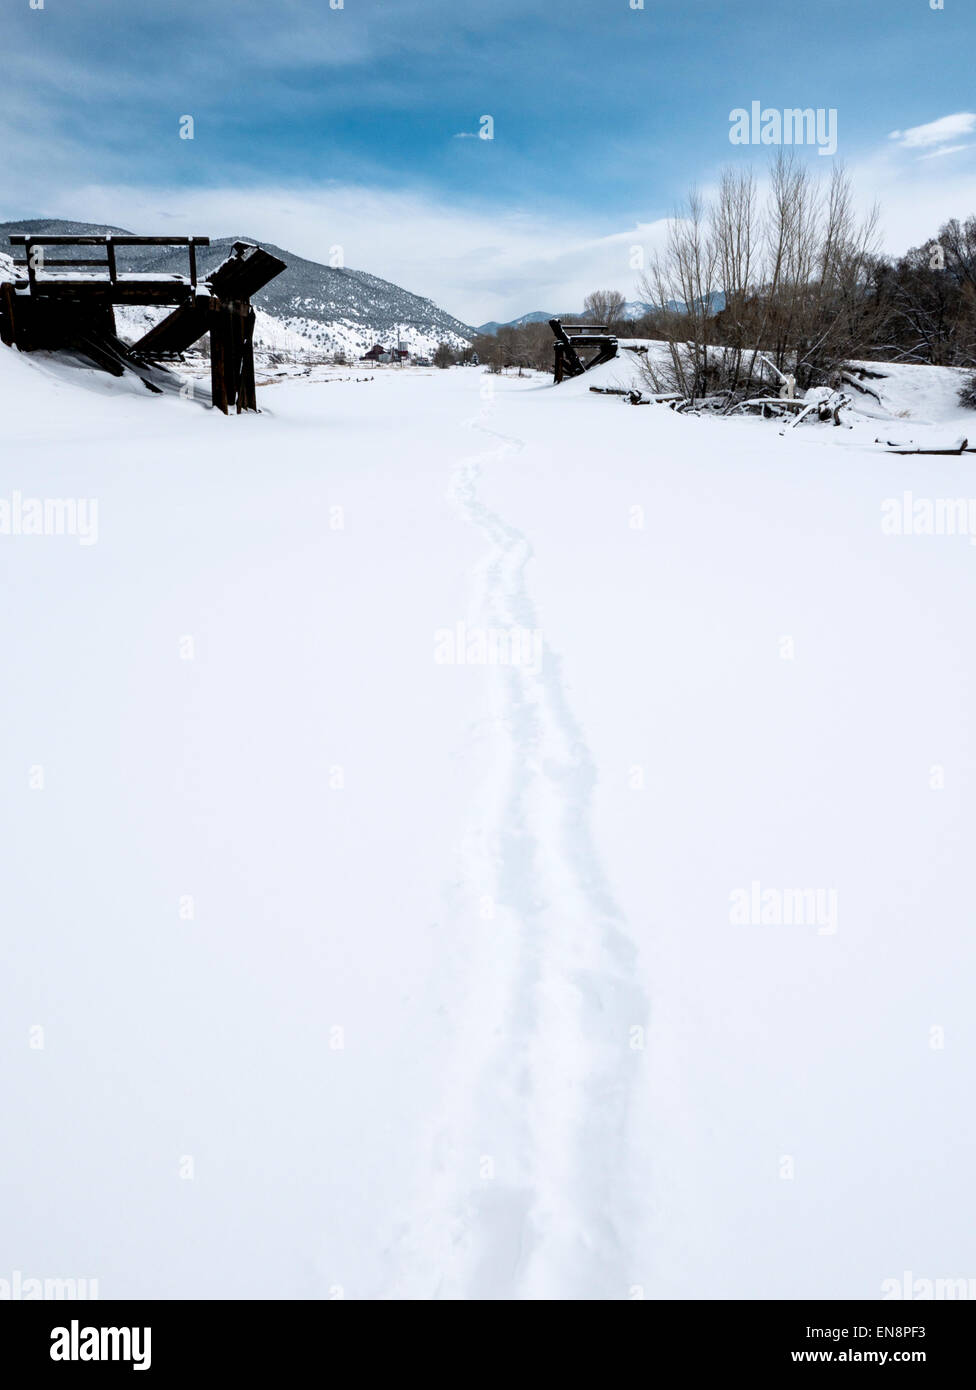 Footprints and tracks in fresh snow. - Stock Image